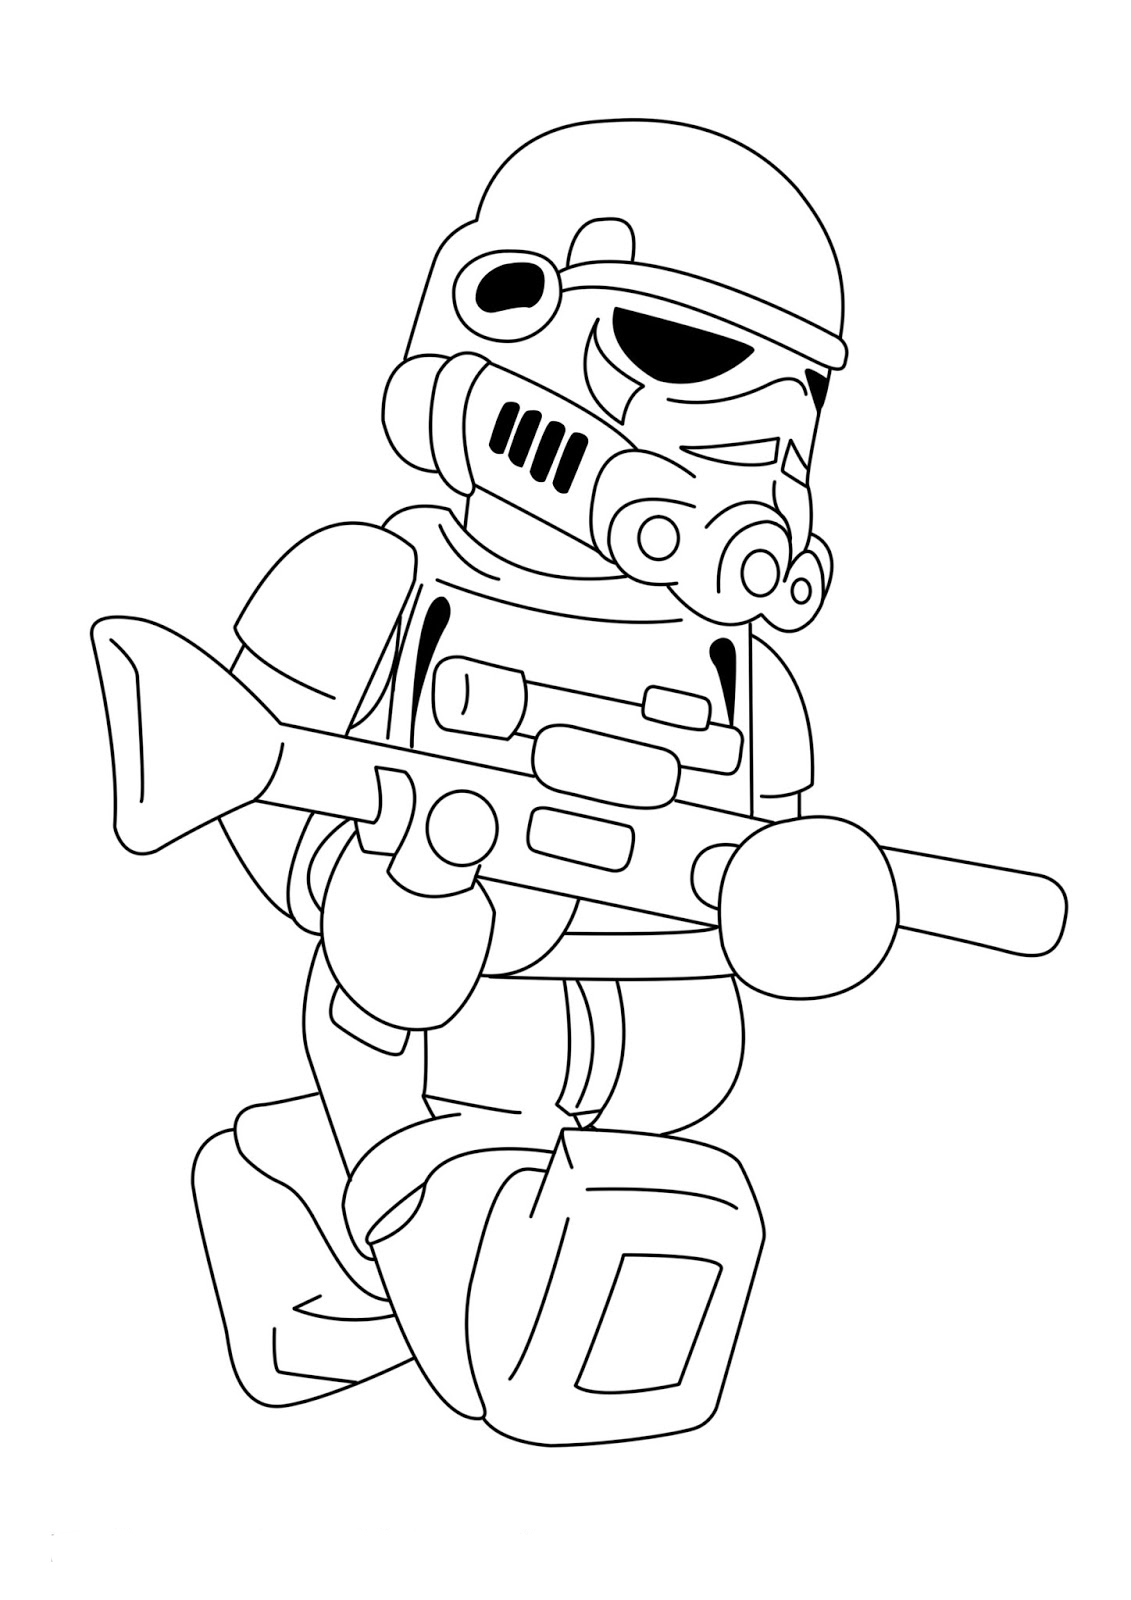 lego coloring sheets printables lego star wars coloring pages best coloring pages for kids coloring printables sheets lego